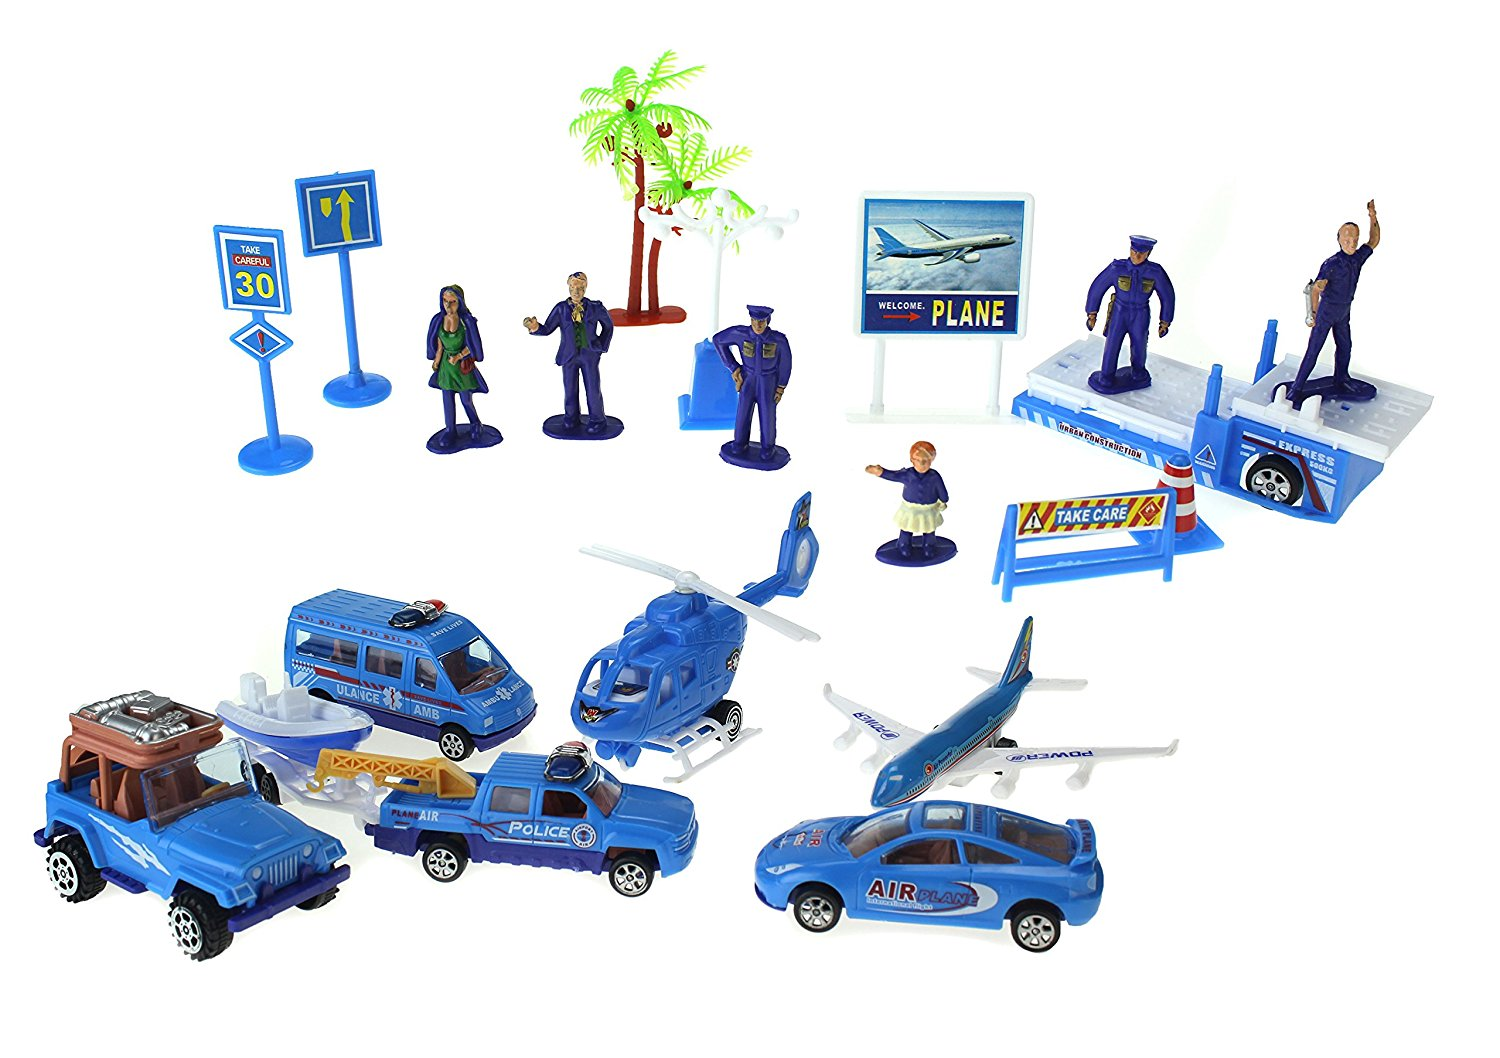 Tropical Airport Toy Vehicle Playset w  4 Car Vehicles, Helicopter, Jet, 5 Figures, &... by Velocity Toys